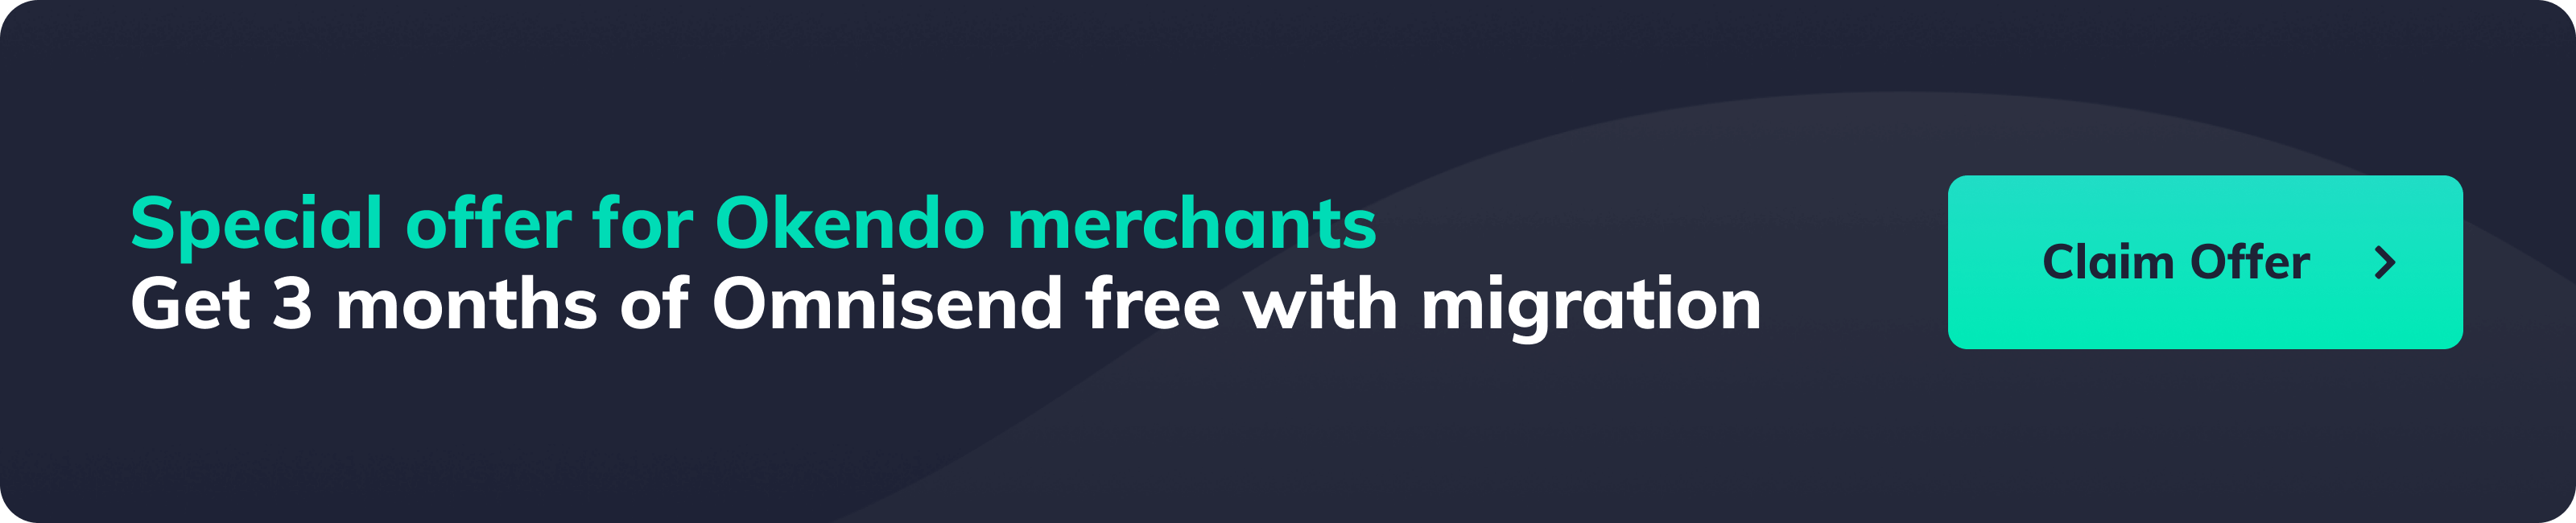 Special offer for Okendo merchants: Get 3 months of Omnisend free with migration, click here to claim the offer!